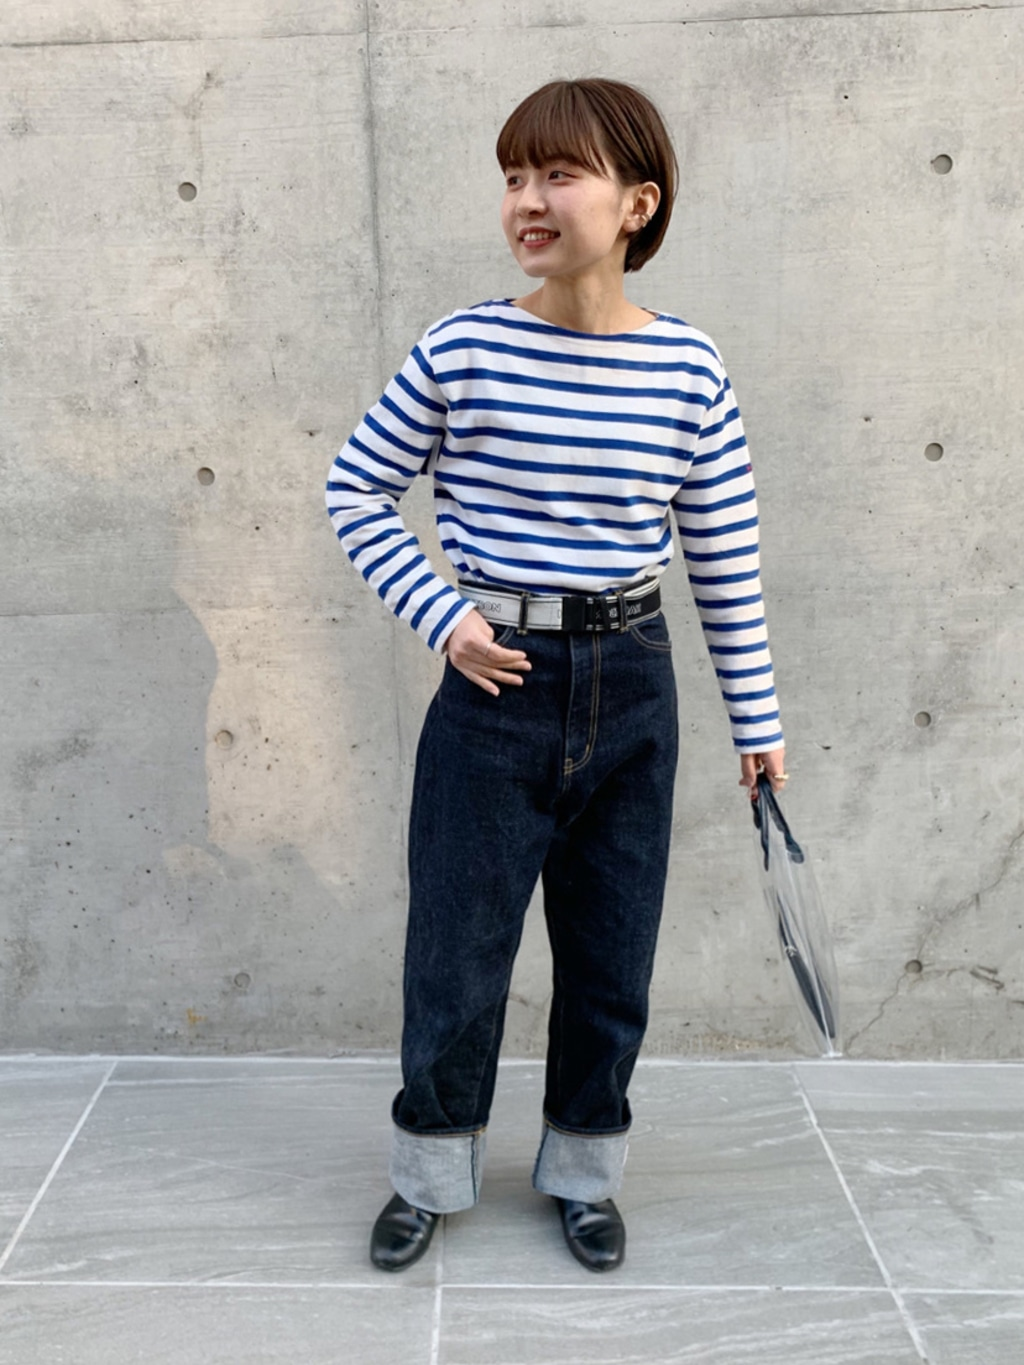 Dot and Stripes CHILD WOMAN ラフォーレ原宿 身長:152cm 2020.04.03